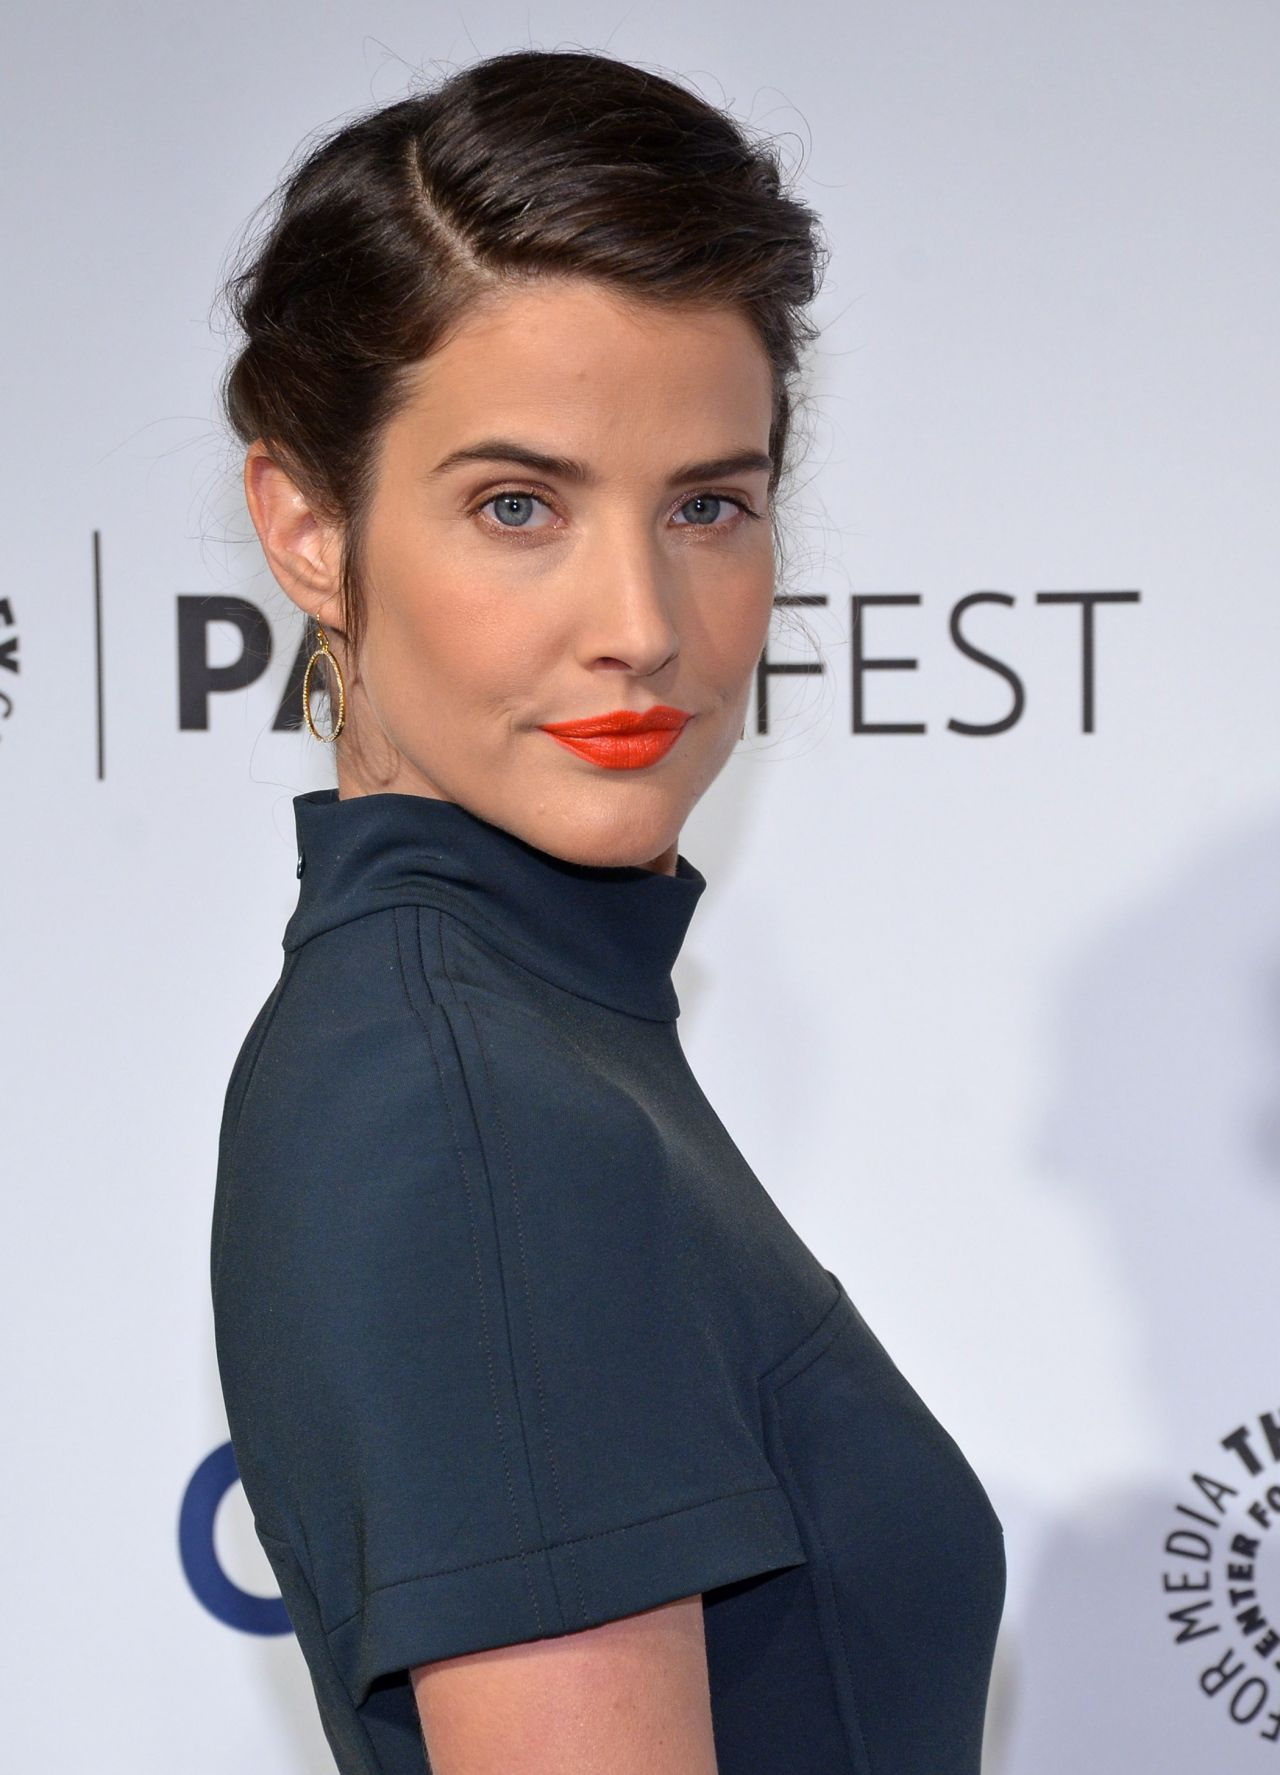 Cobie Smulders - PaleyFest An Evening with HIMYM Event, March 2014